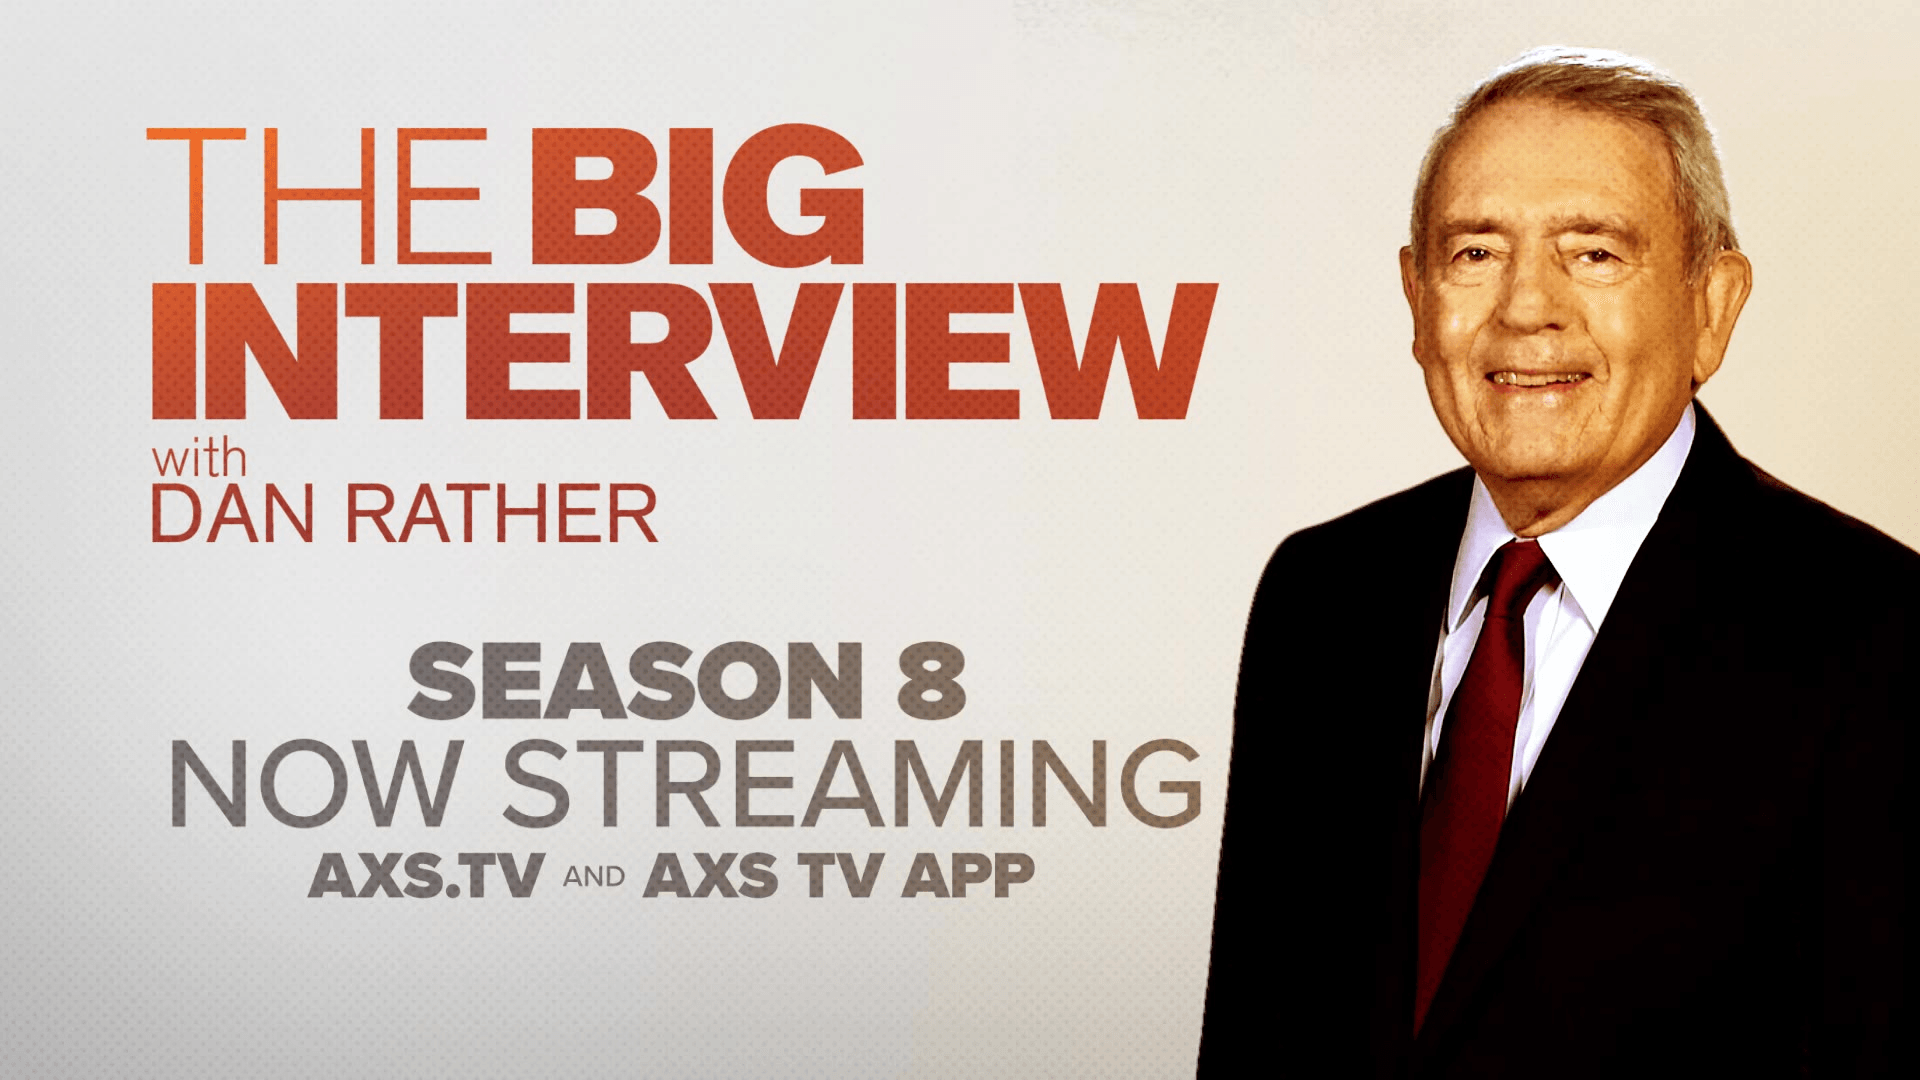 The Big Interview with Dan Rather: Season 8 Now Streaming